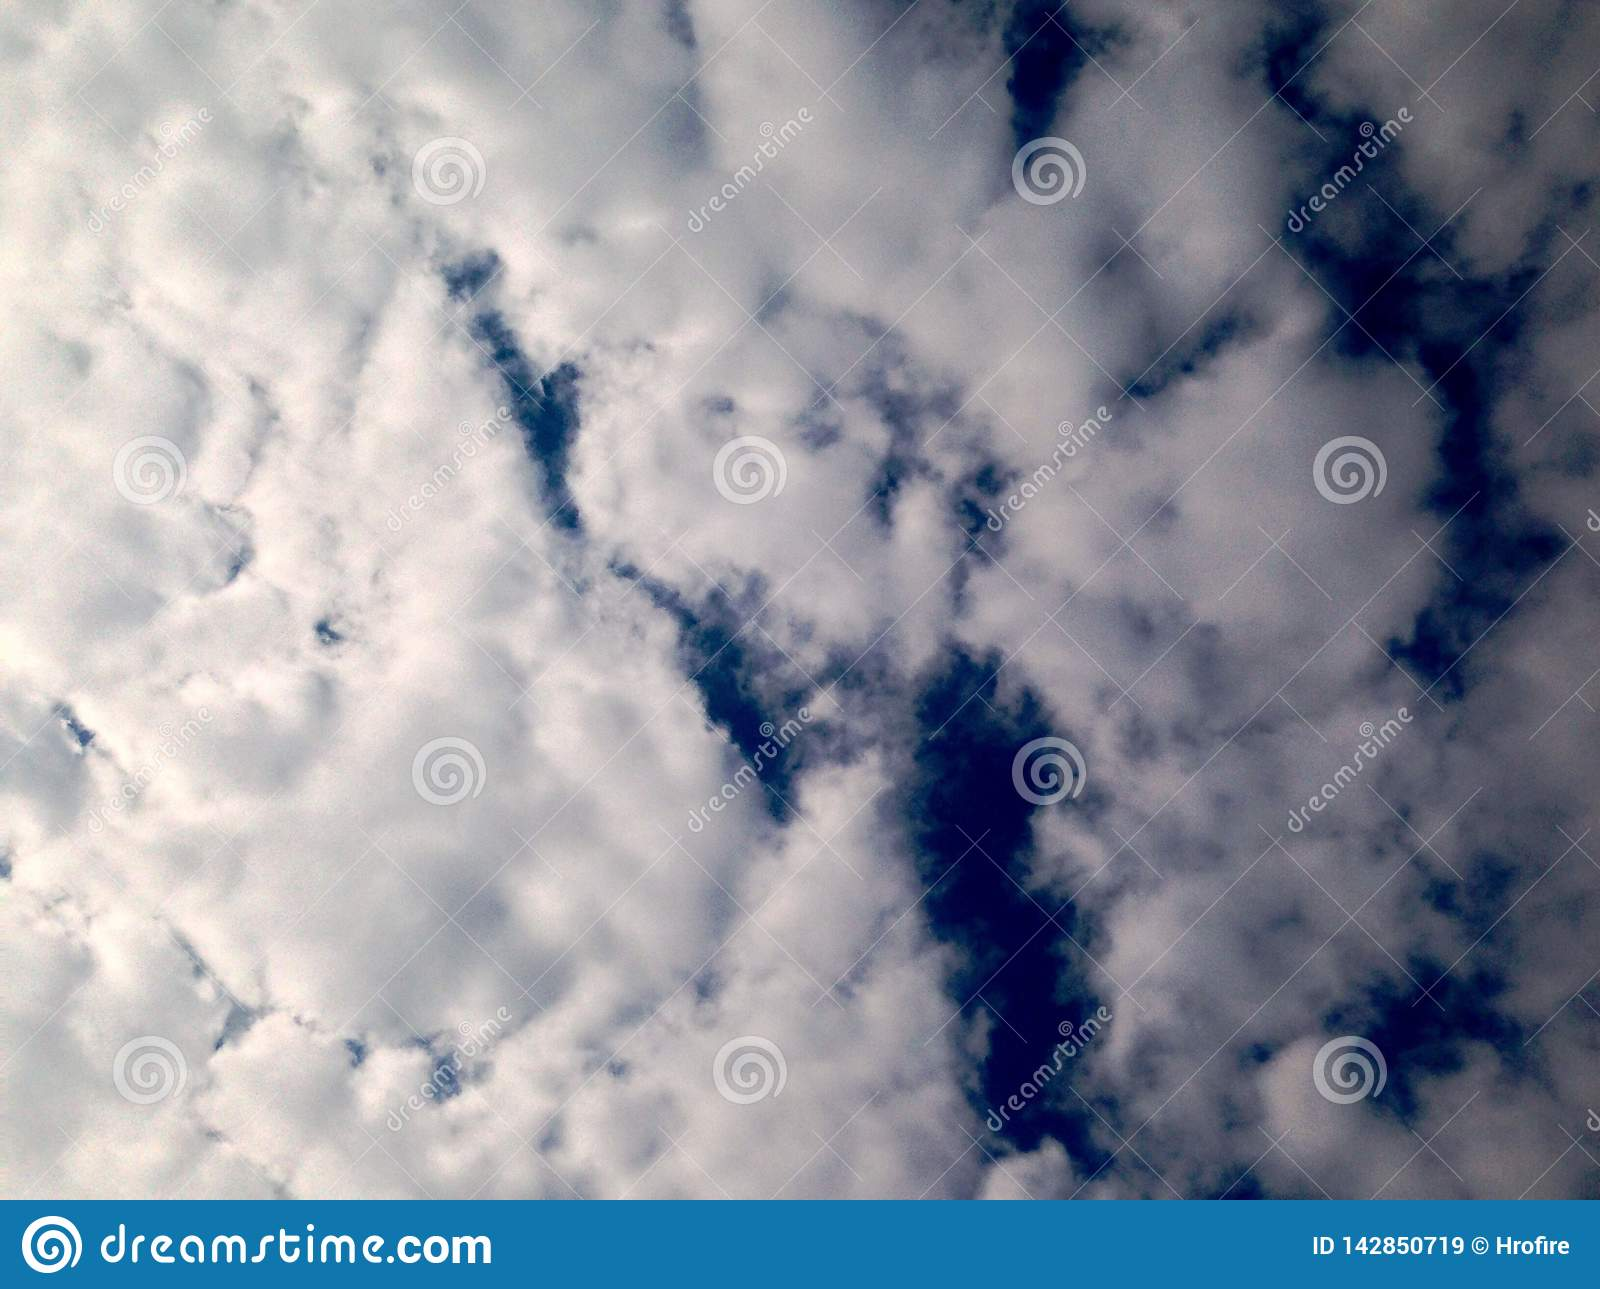 dramatic sky, clouds background, before rain. Wallpaper